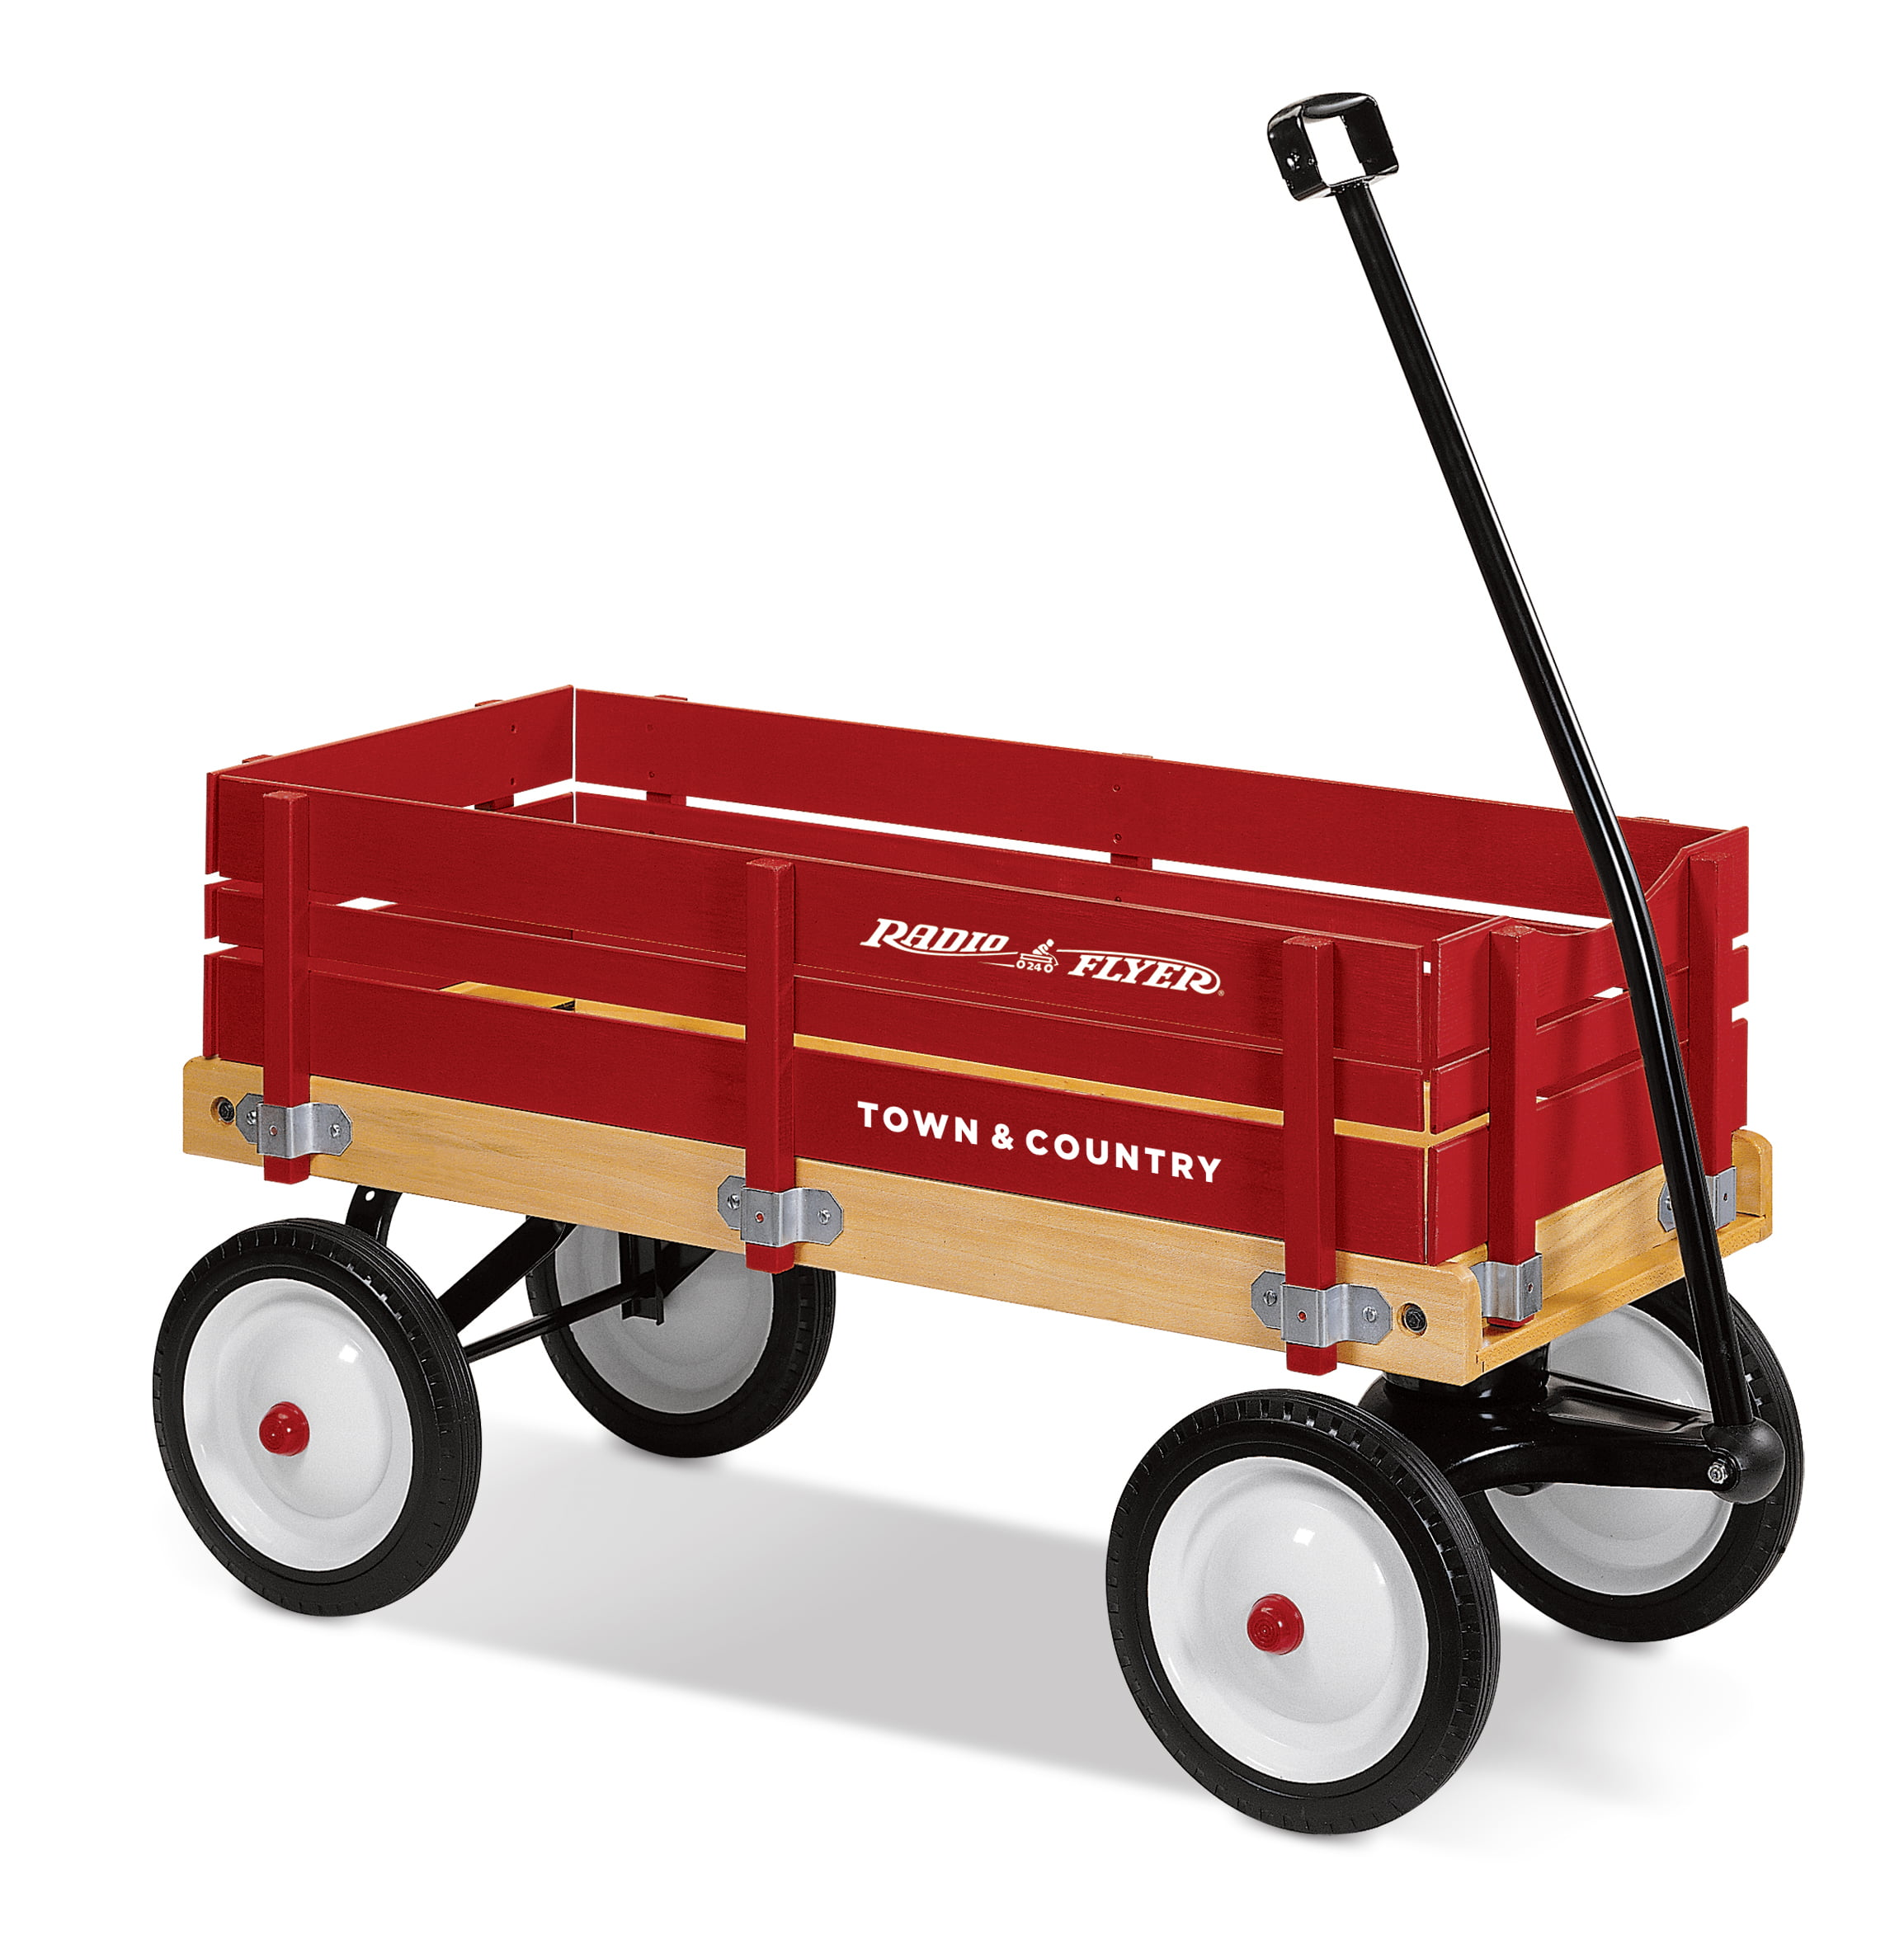 Radio Flyer, Town & Country Wagon, Wood Body, Red by Radio Flyer Inc.